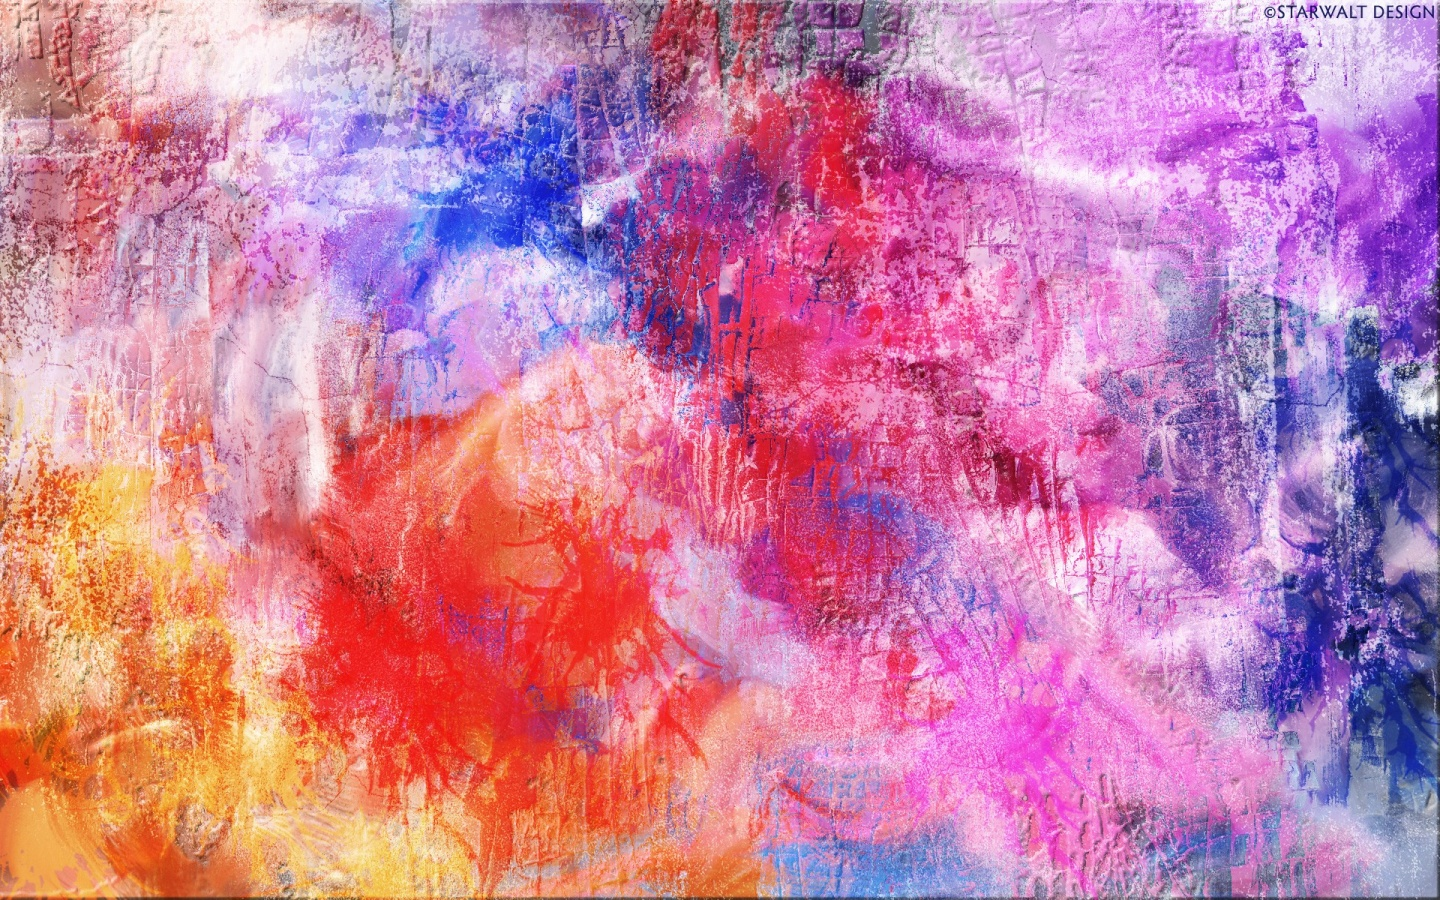 1440x900 Abstract Digital Art desktop PC and Mac wallpaper 1440x900